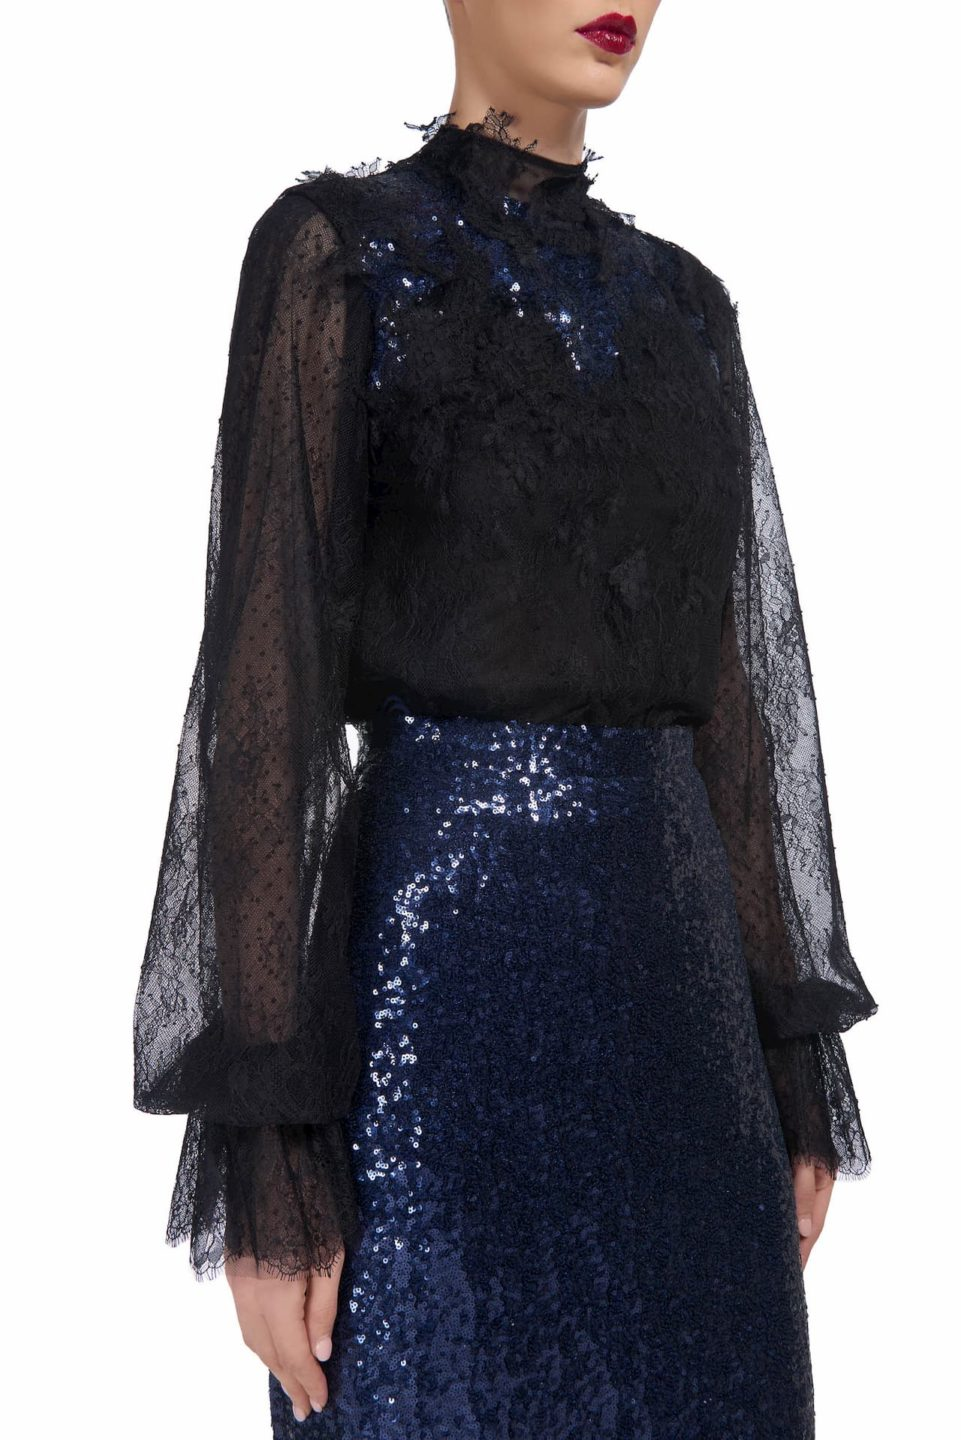 Deena PR1916 black chantilly lace and dotted tulle blouse with sequins and corded lace appliques